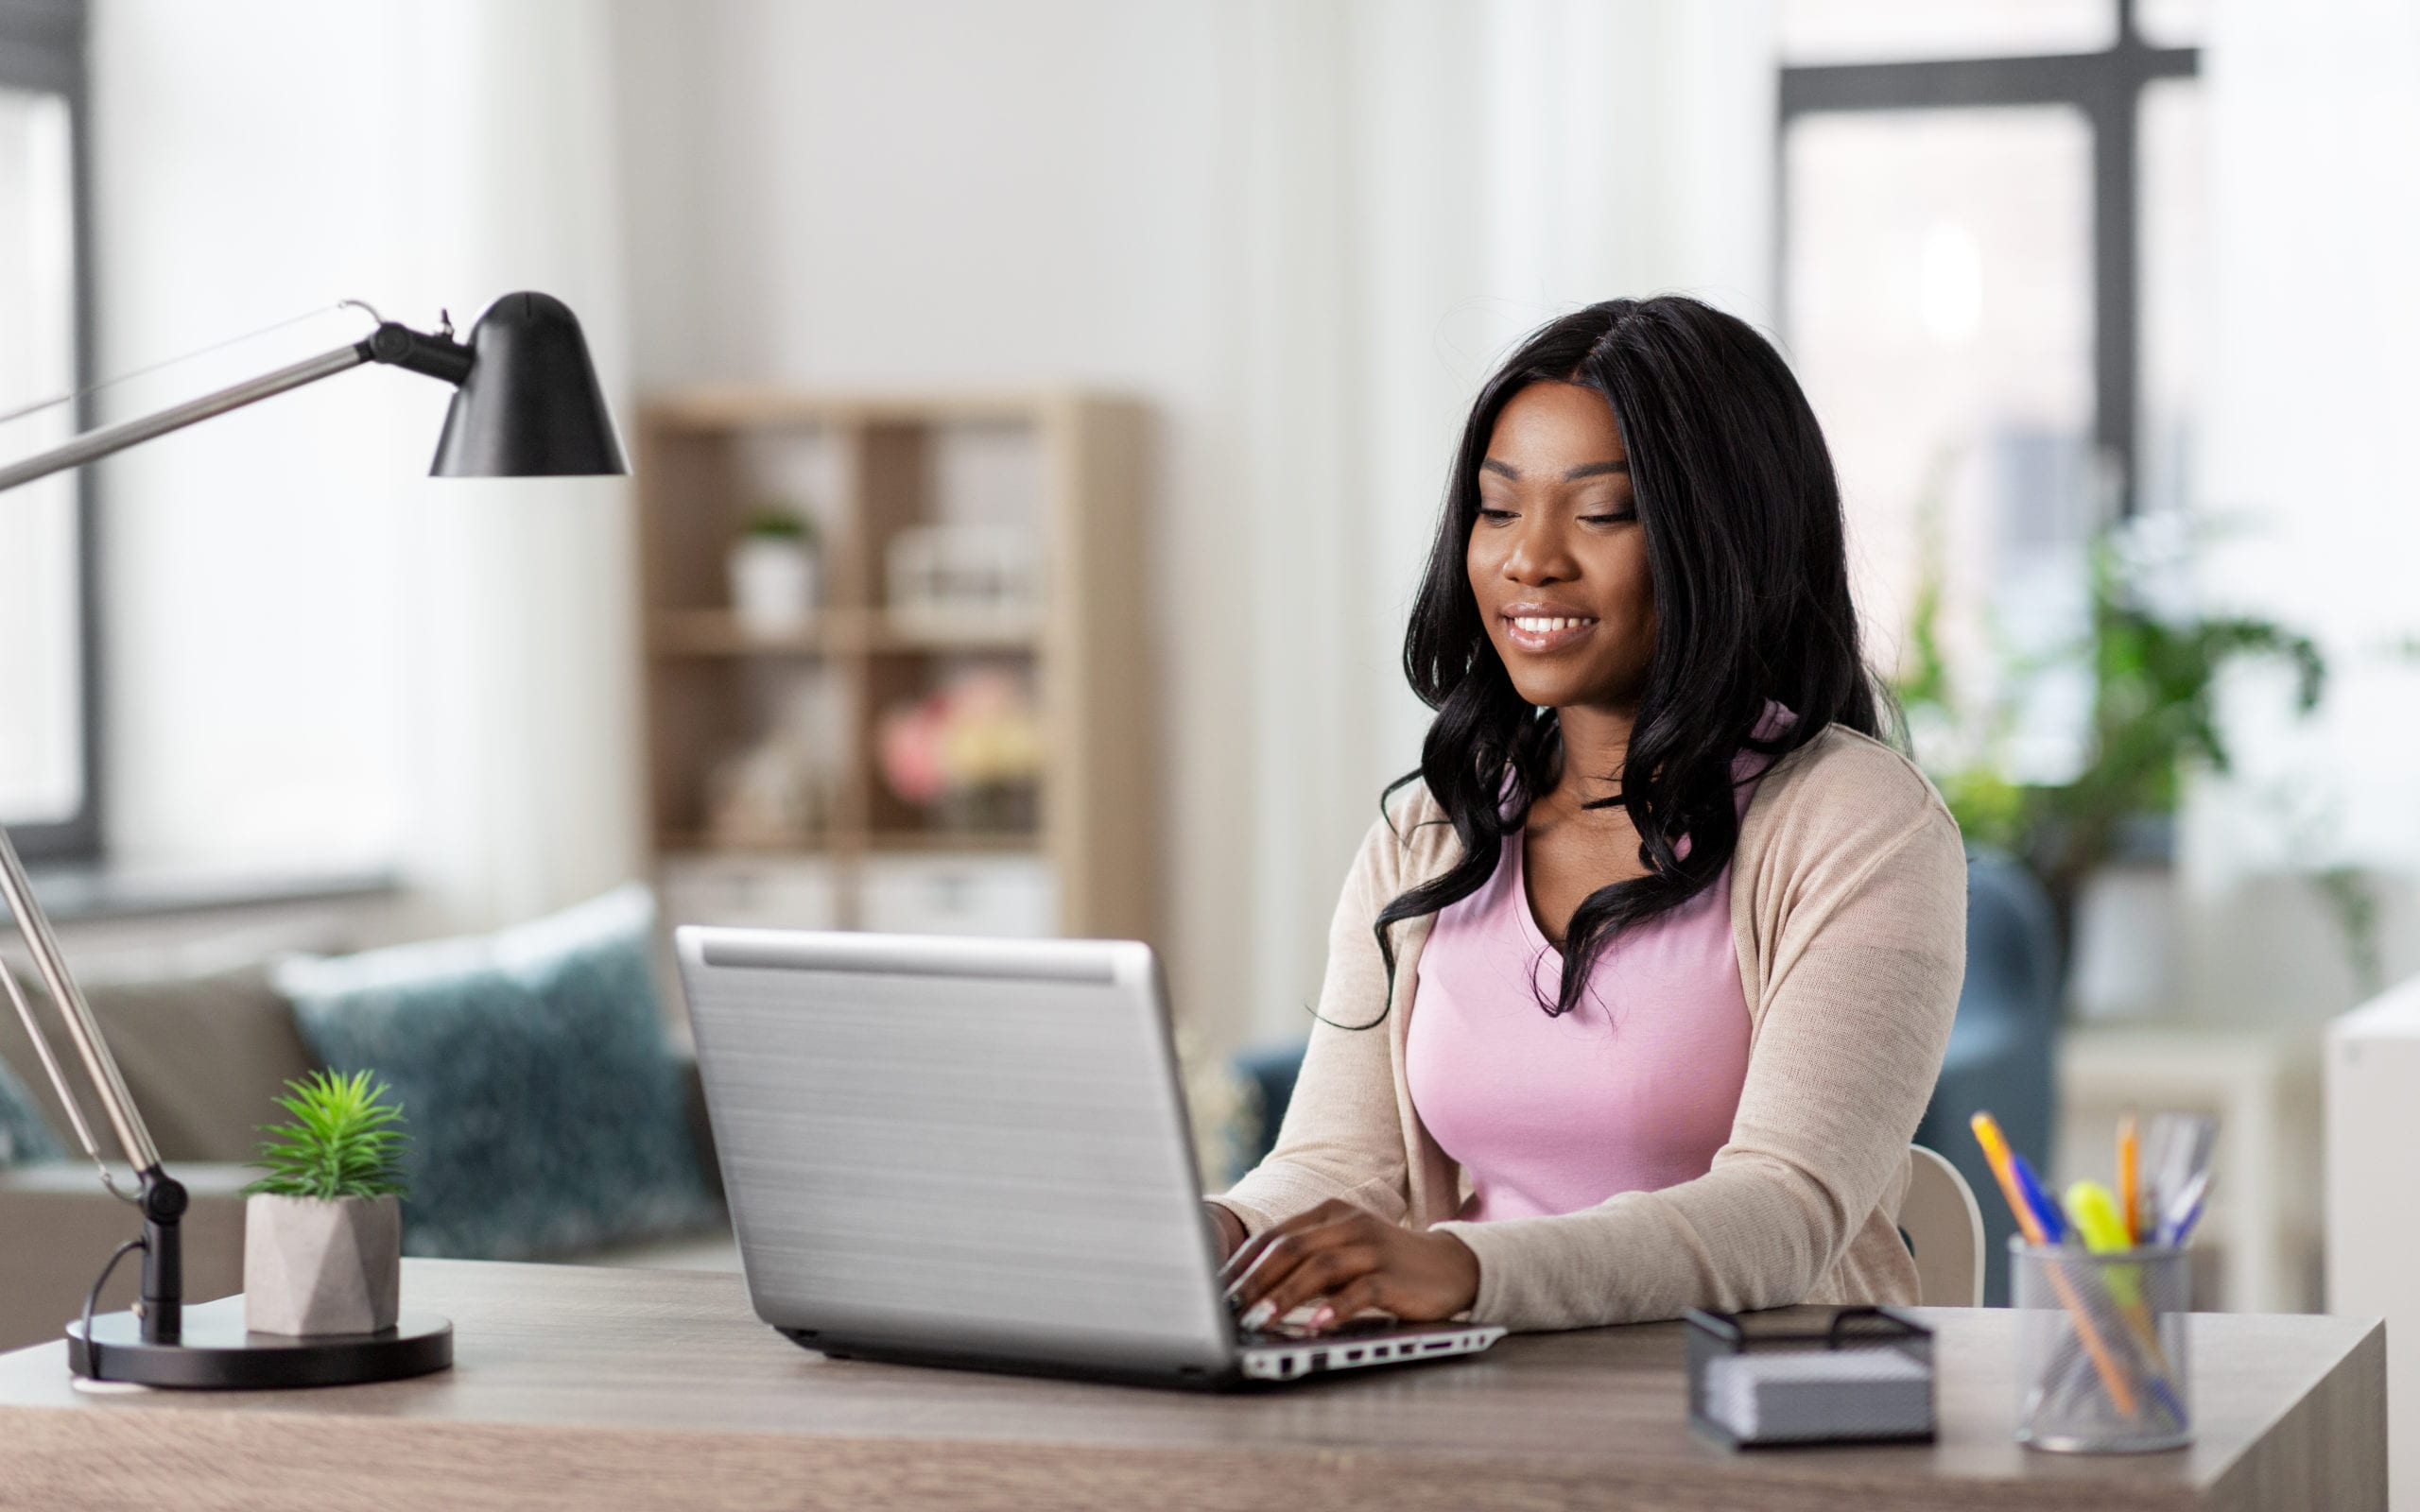 A women looking at abortion information online